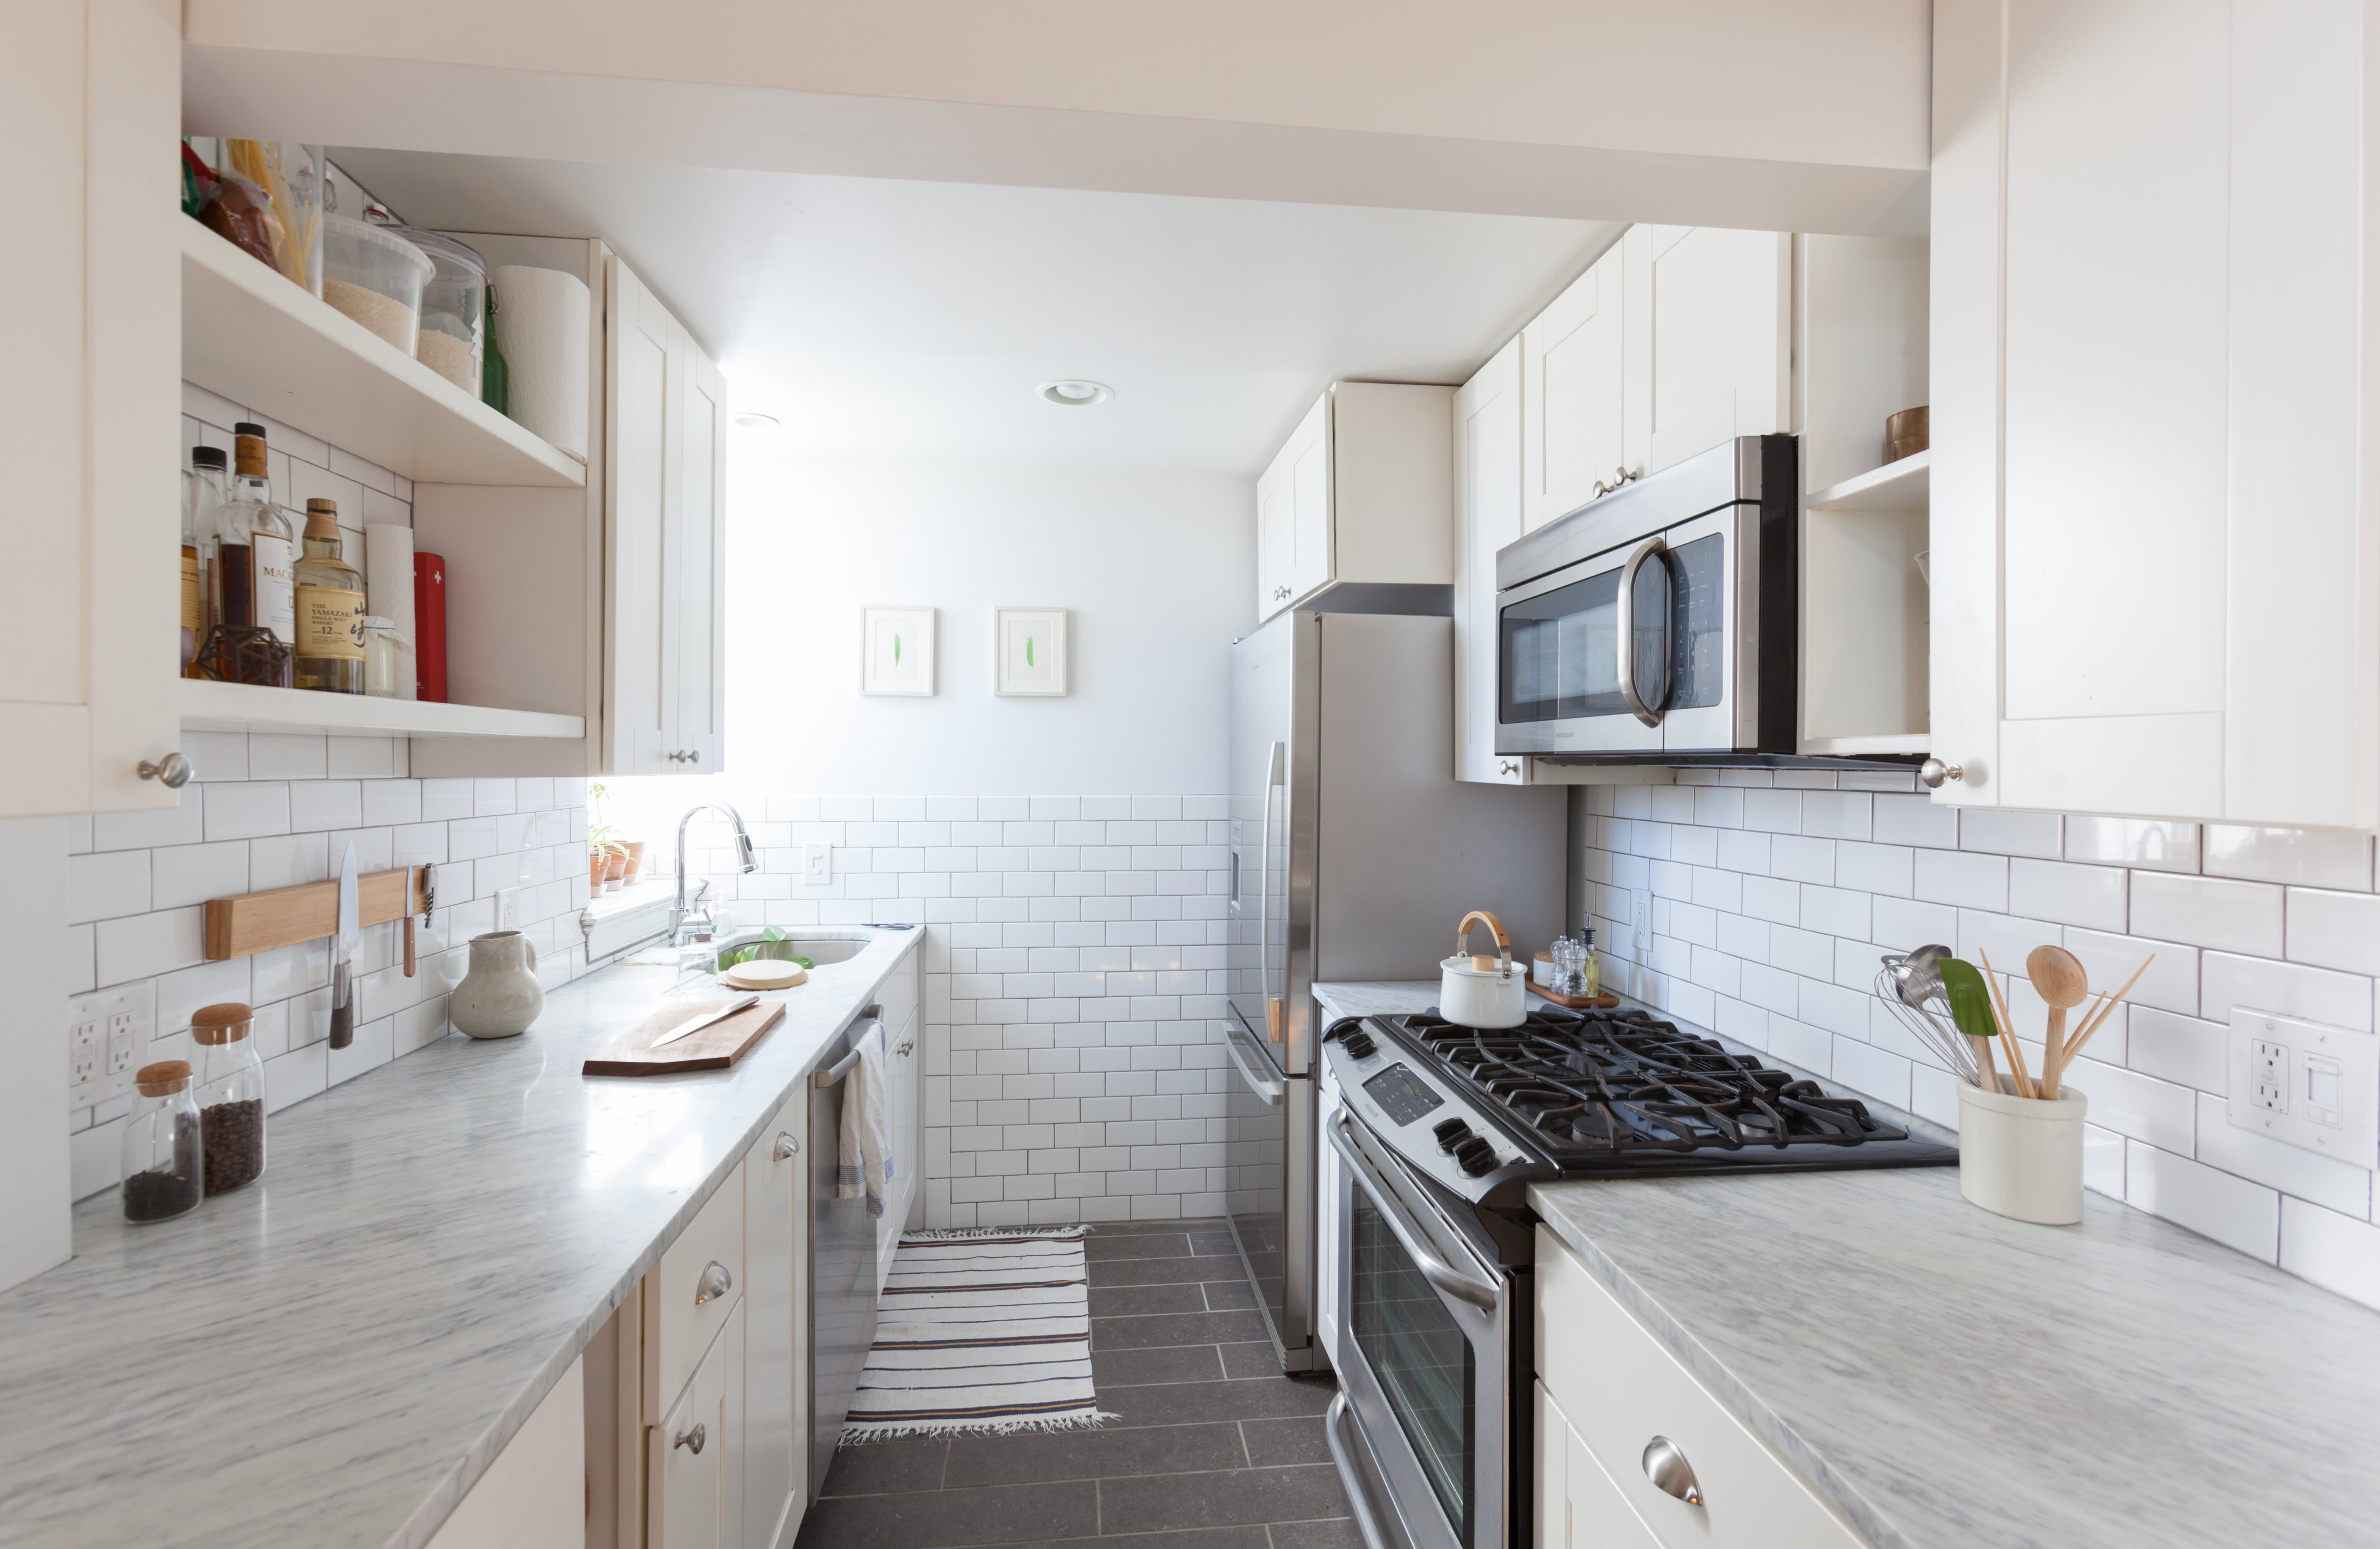 Galley Kitchen Ideas - Designs, Layouts, Style | Apartment ...